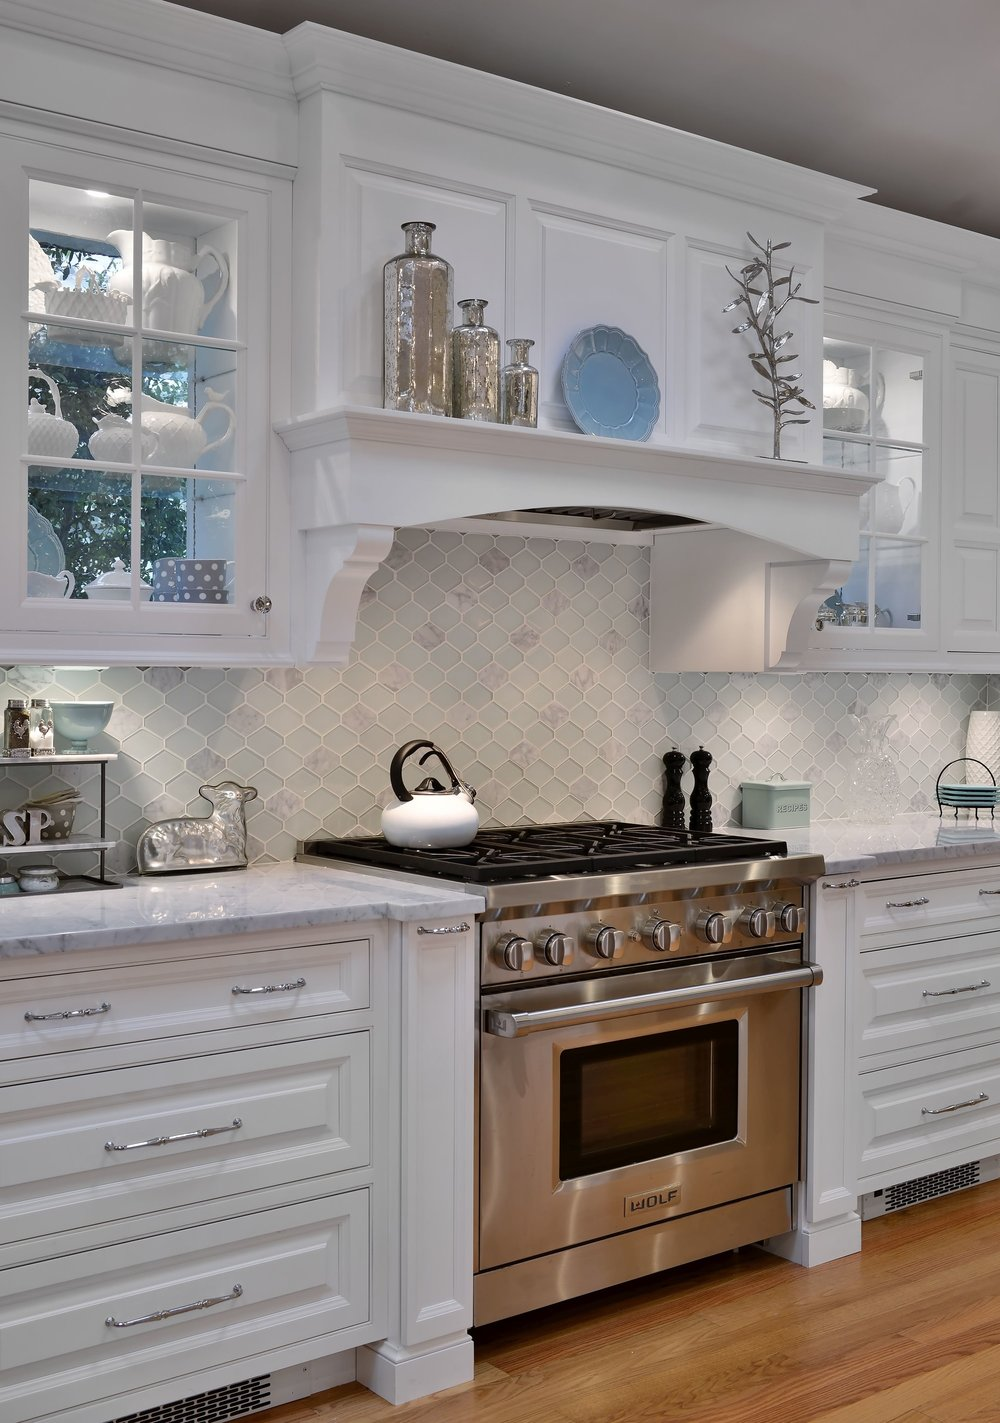 Transitional style kitchen with glass door cabinet and open shelf